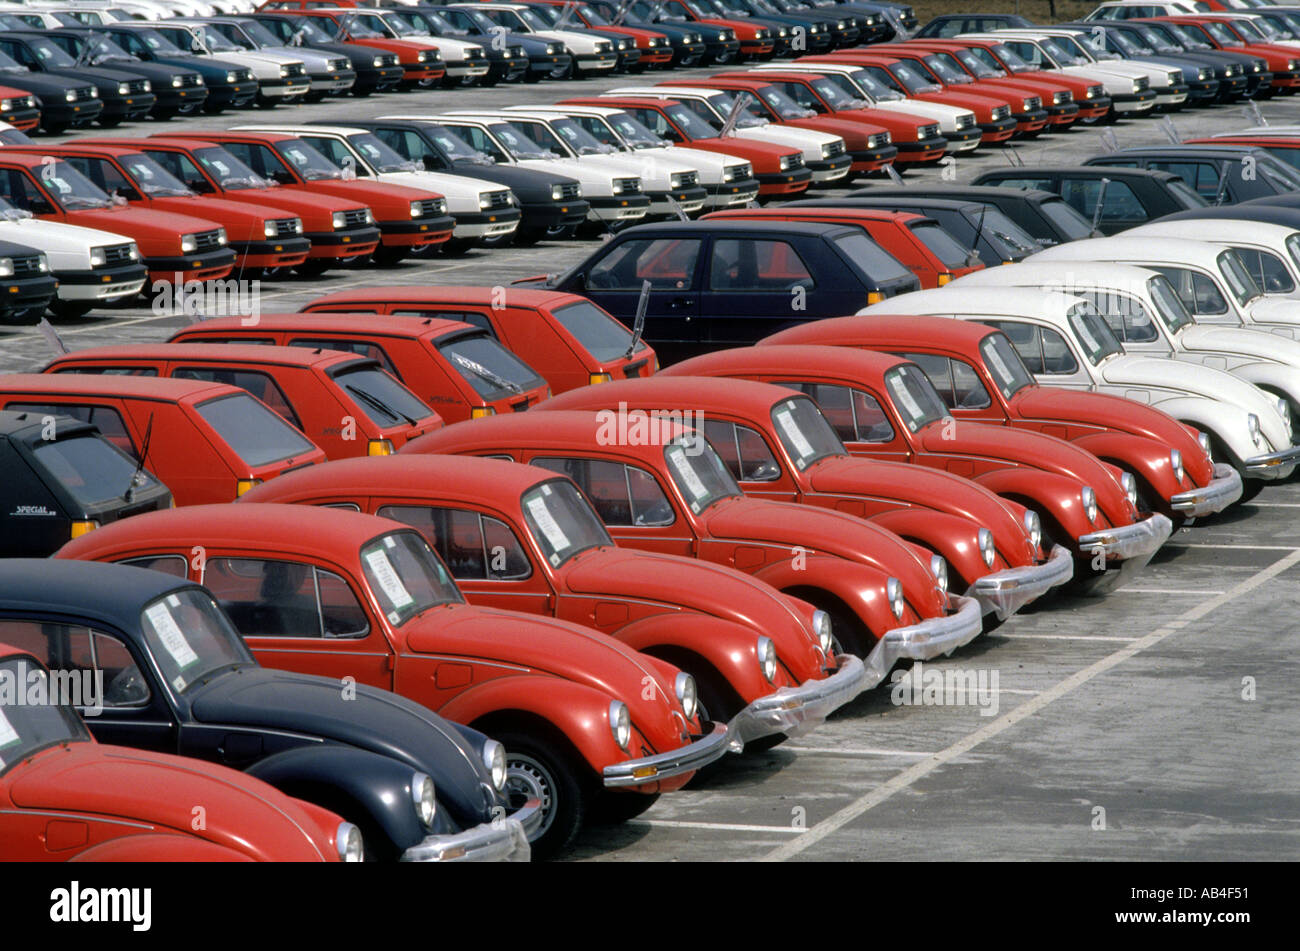 Vw Jetta Stock Photos Images Alamy Mexican Beetle Wiring Diagram Volkswagen Beetles And Jettas Waiting To Be Loaded On Railcars For Shipment At The Plant